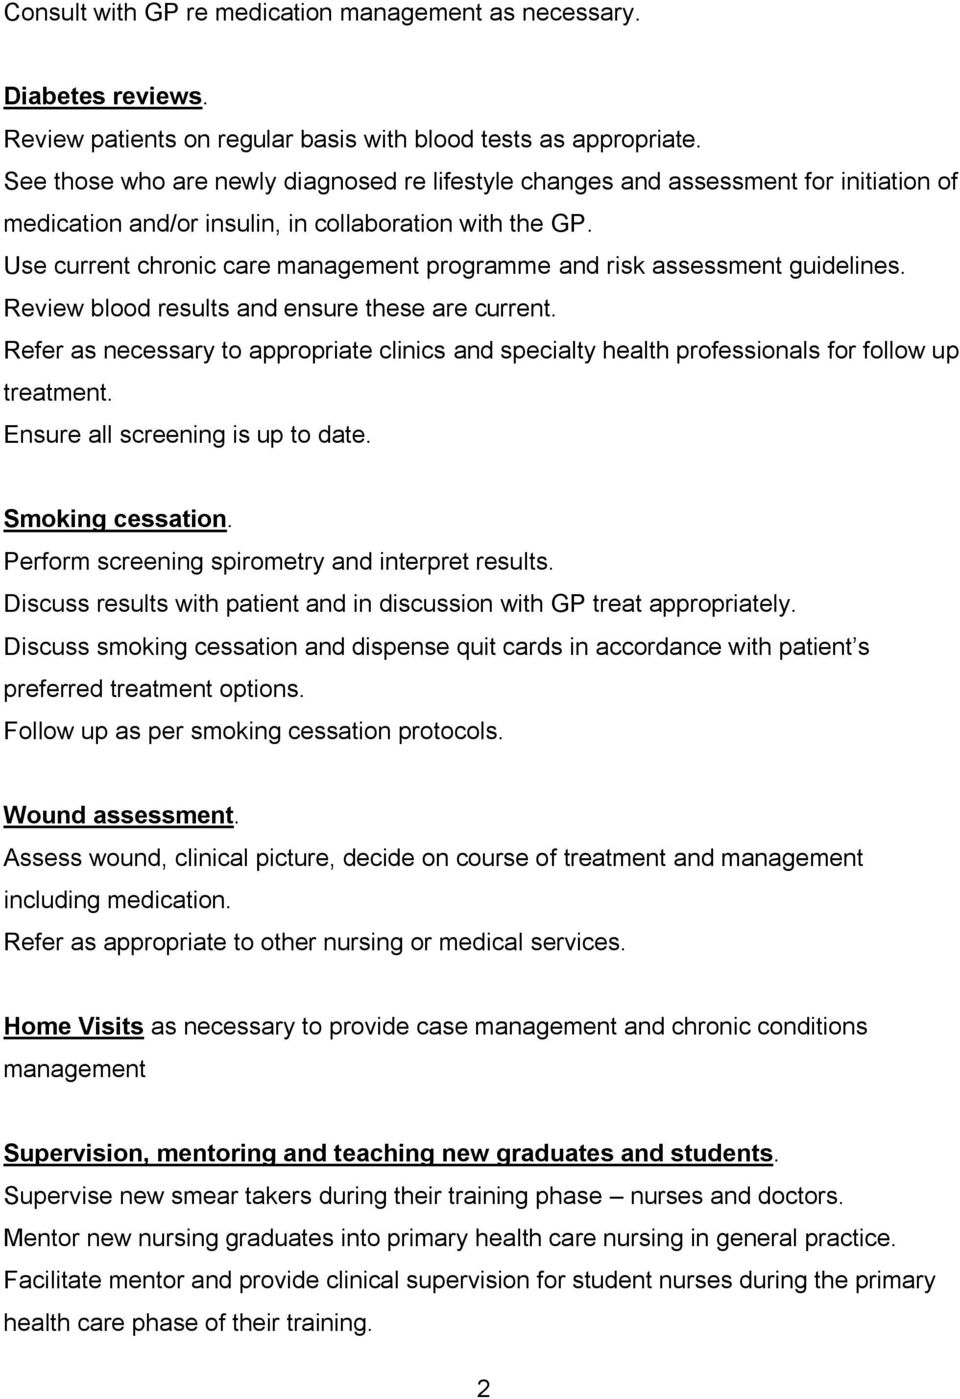 Use current chronic care management programme and risk assessment guidelines. Review blood results and ensure these are current.